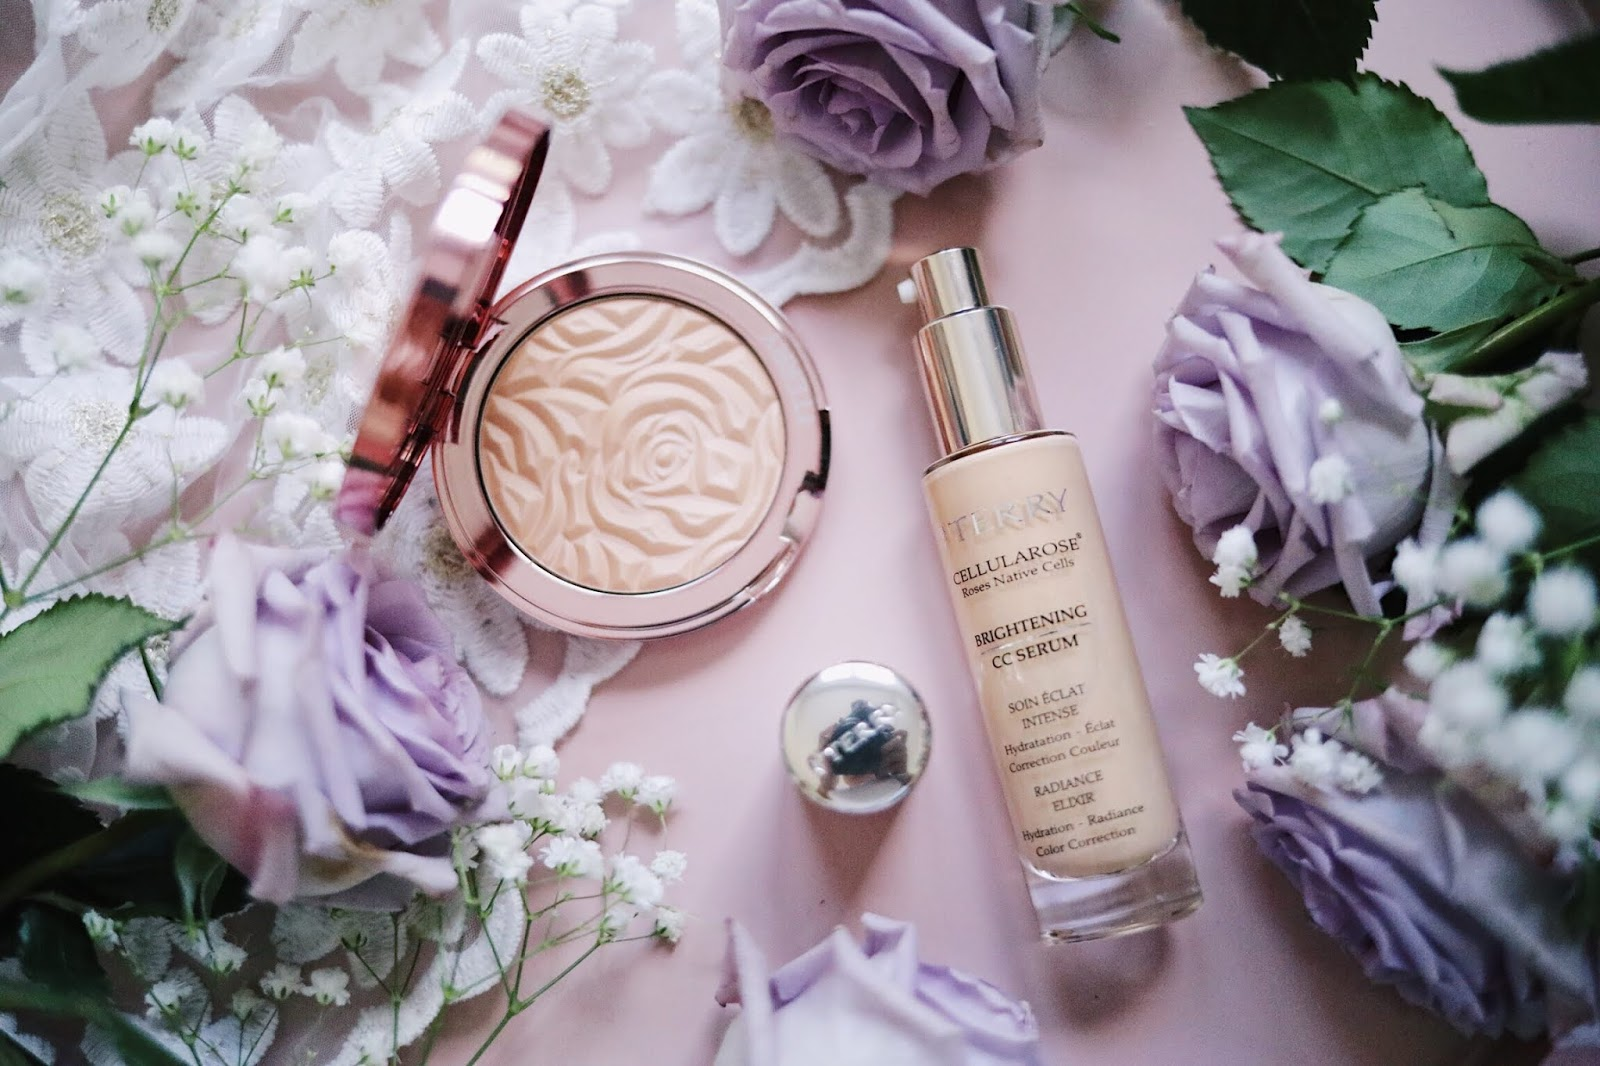 BY TERRY , BRIGHTENING CC SERUM ,BRIGHTENING CC POUDRE , ROSE ,PARIS , rose mademoiselle , rosemademoiselle, blog beauté